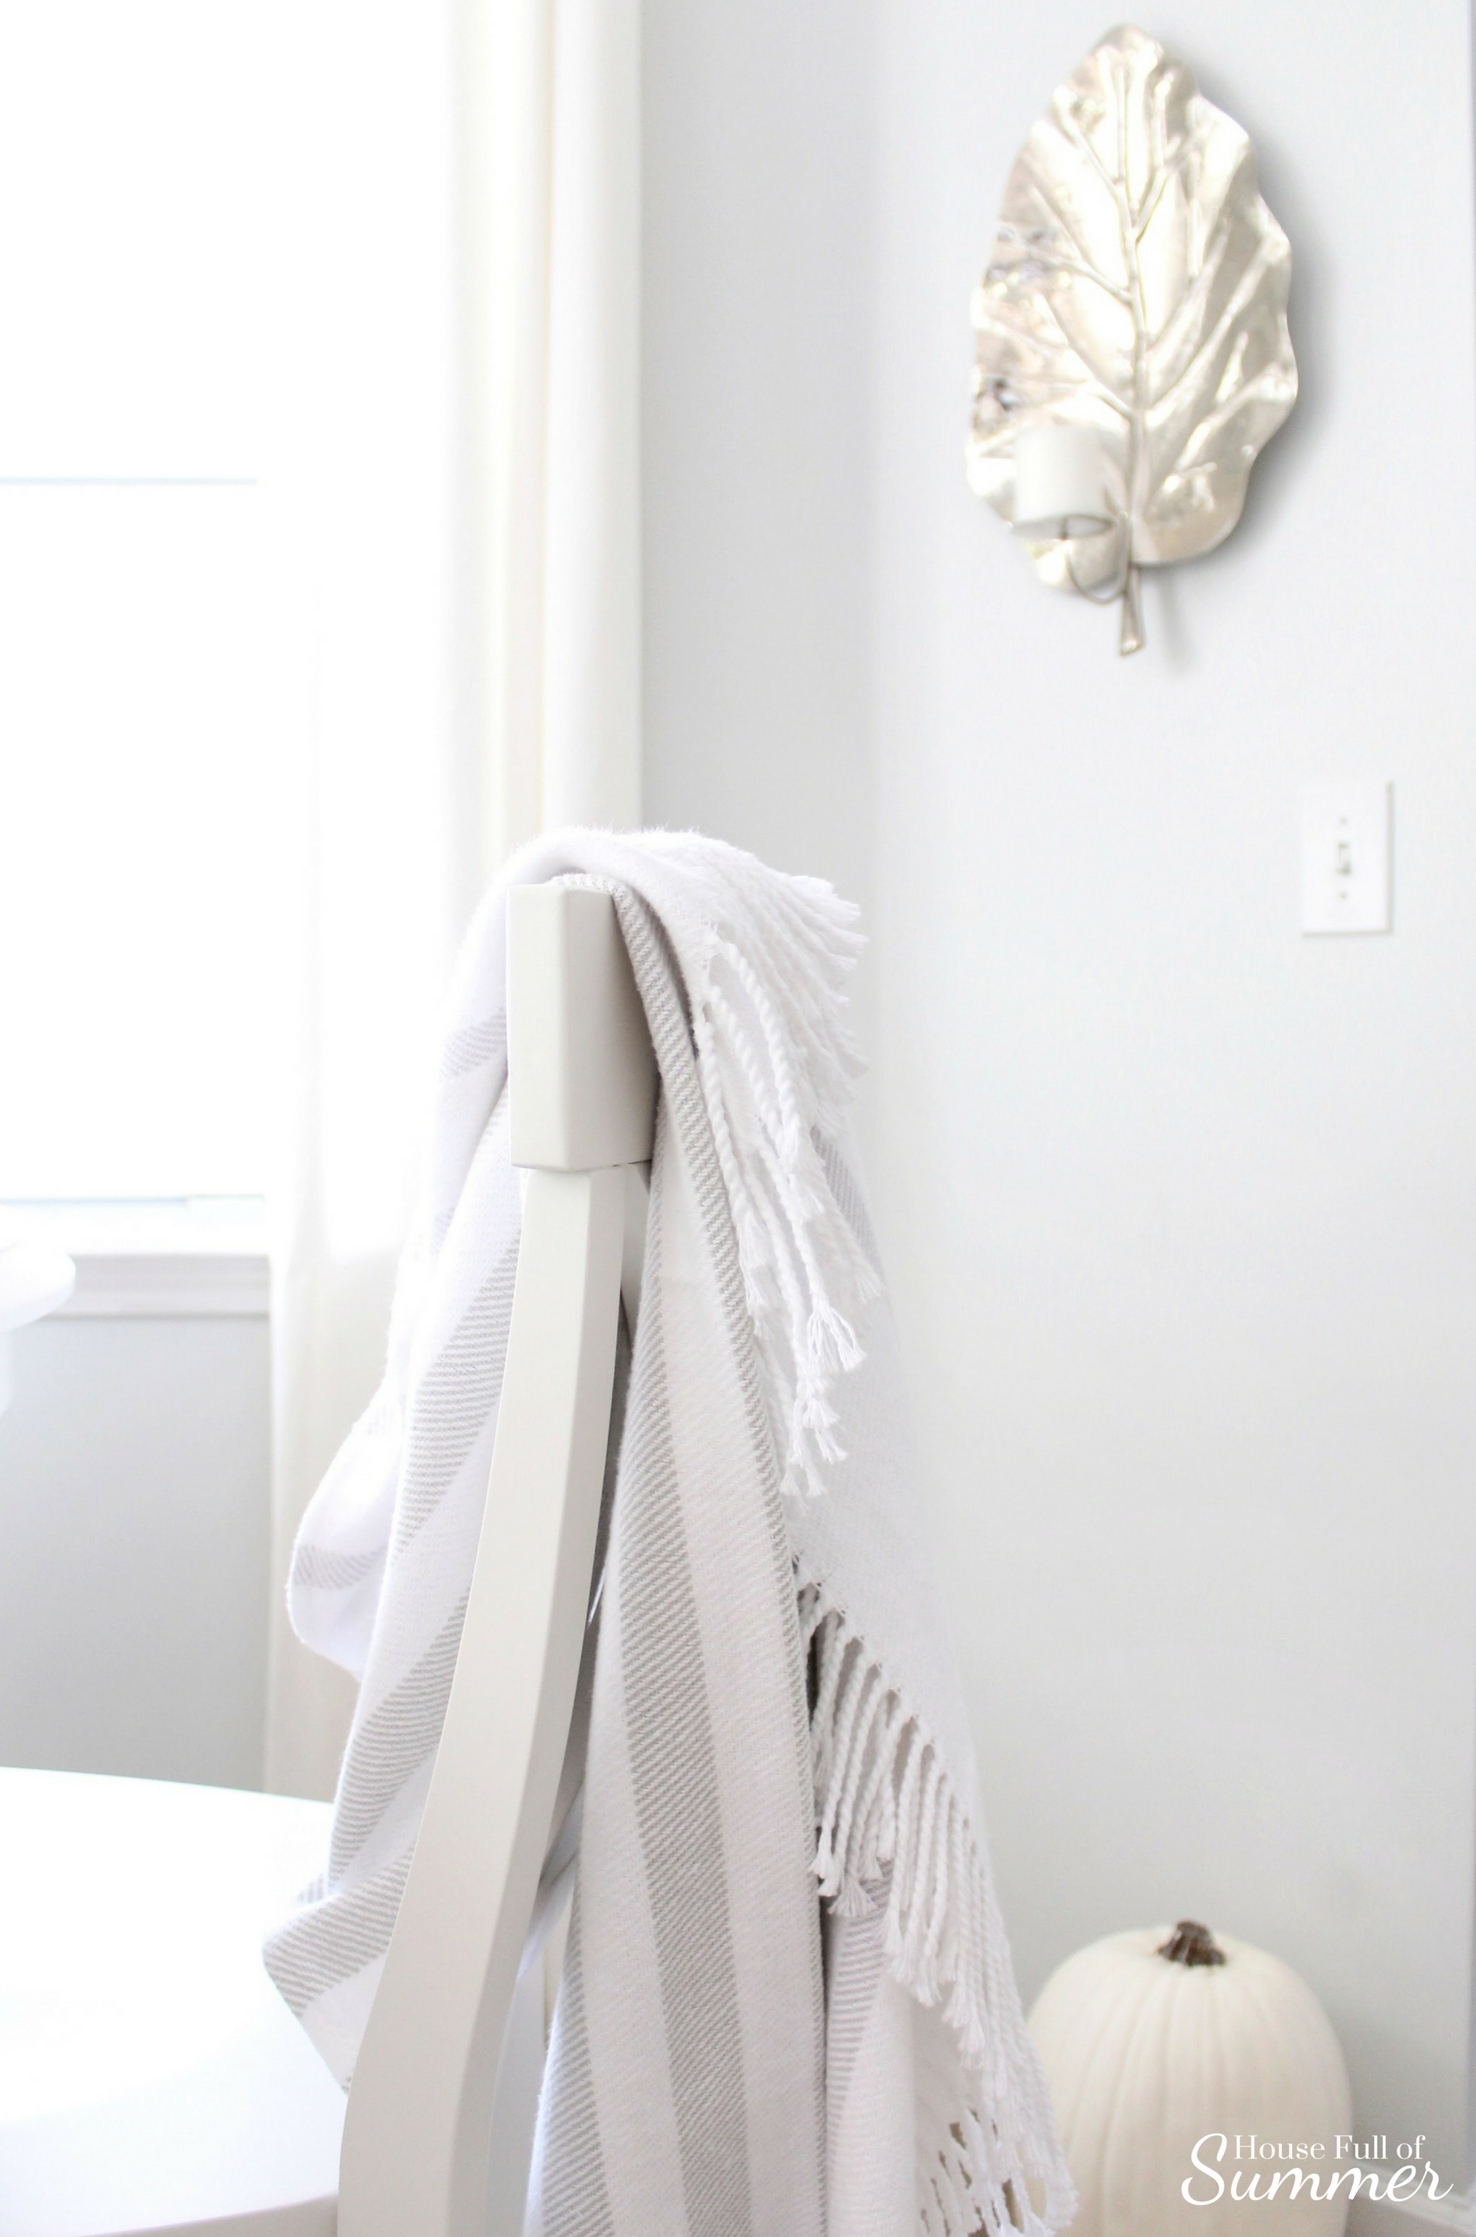 House Full of Summer - Fall Home Tour: Cozy Coastal Chic, Welcoming Fall Blog Hop, gray and white striped throw, grey, fringe